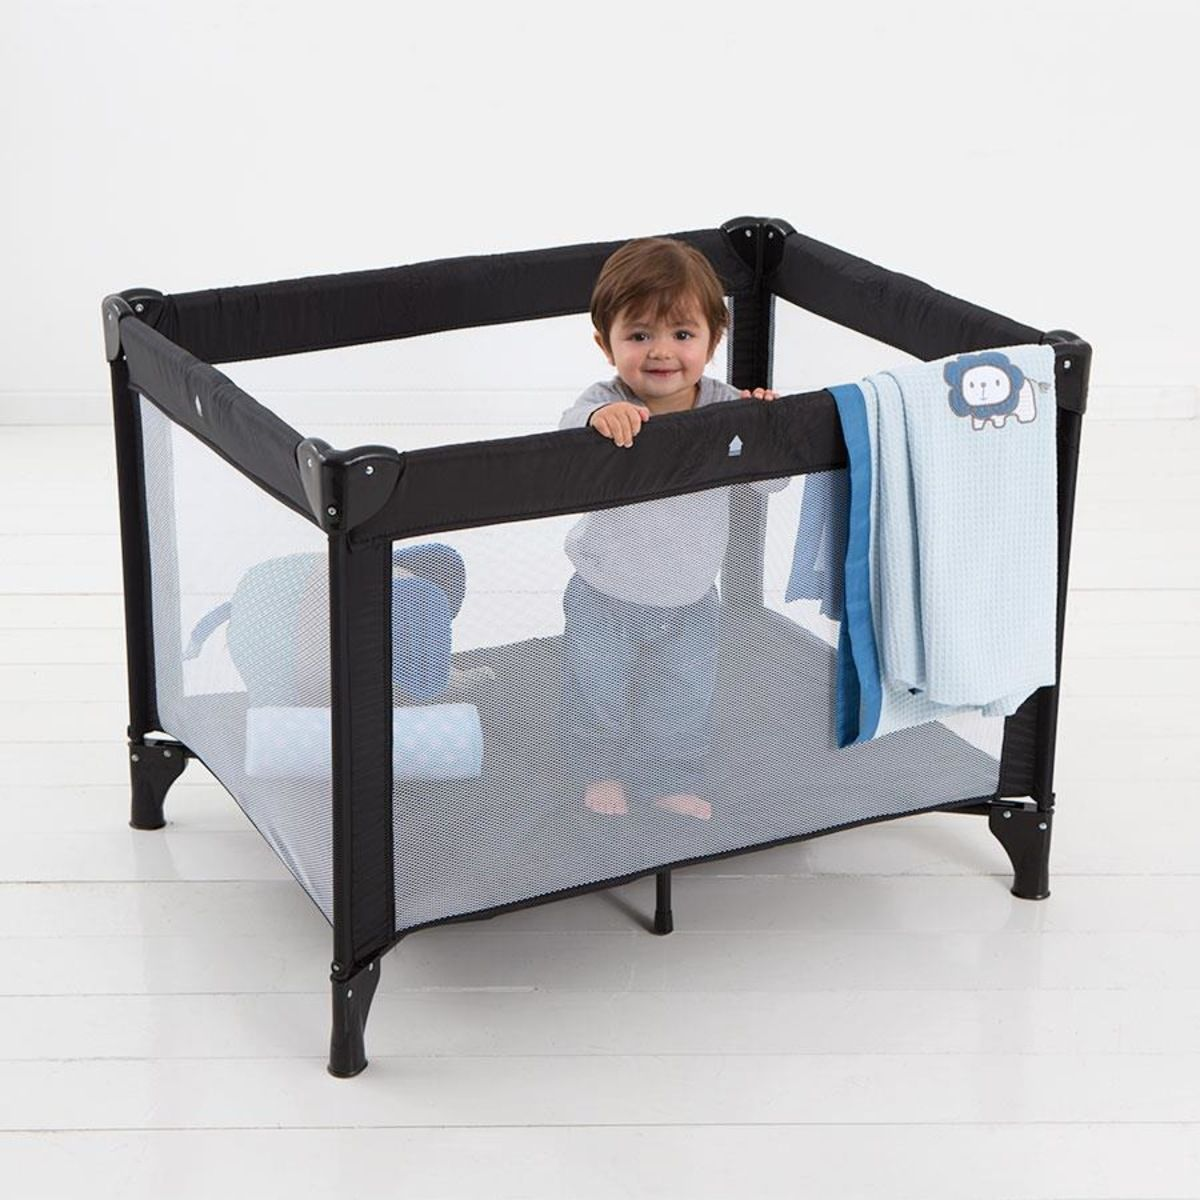 Travel PortaCot KmartNZ Baby equipment, Cot, Baby gates